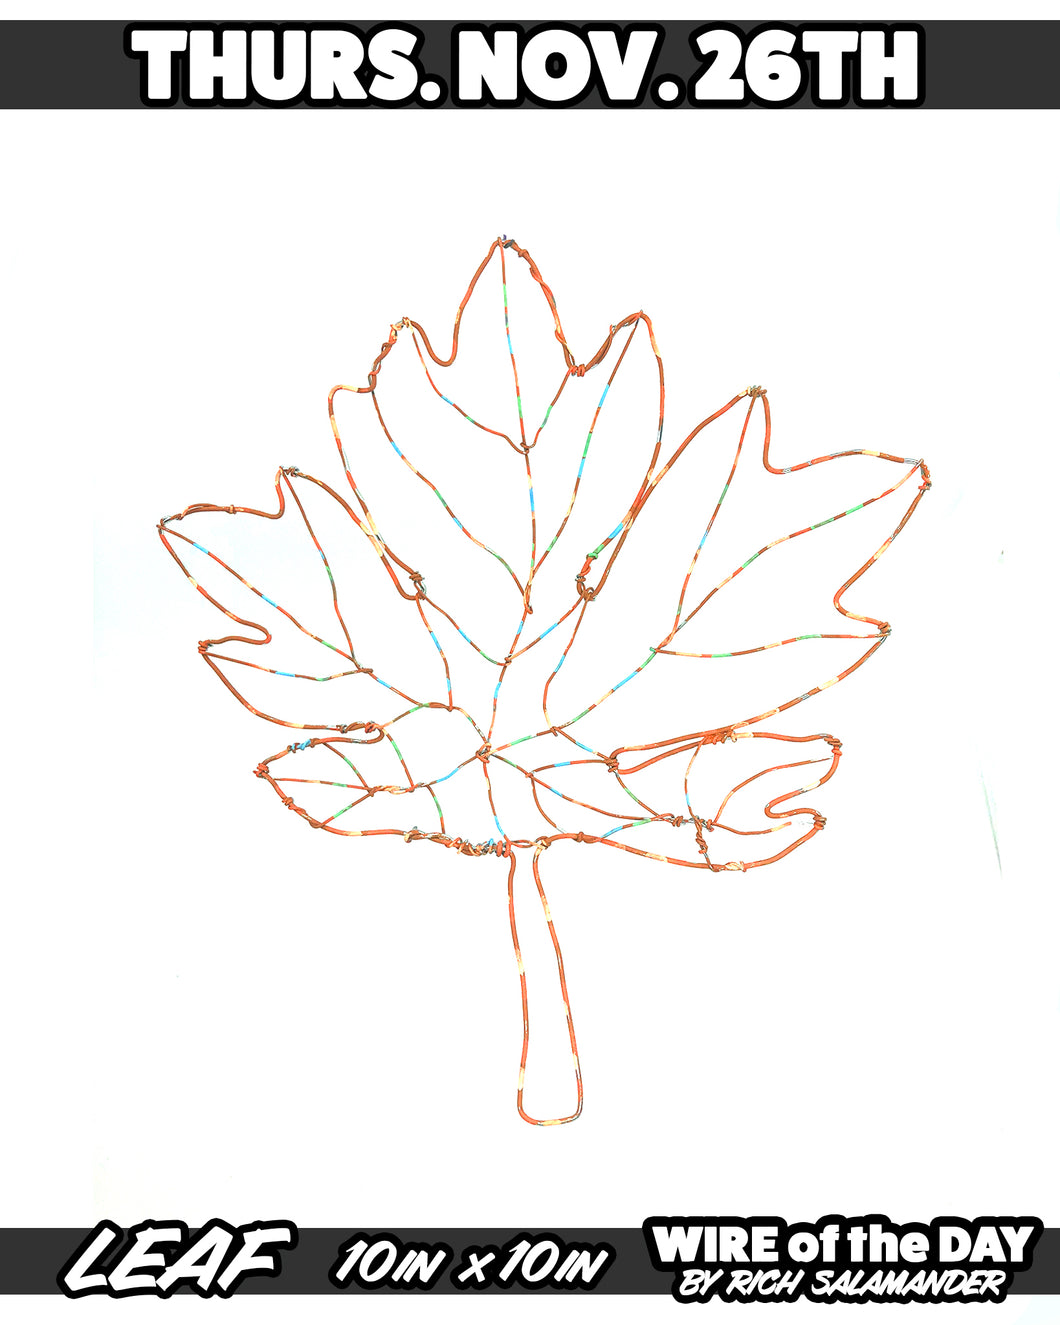 WIRE of the DAY LEAF